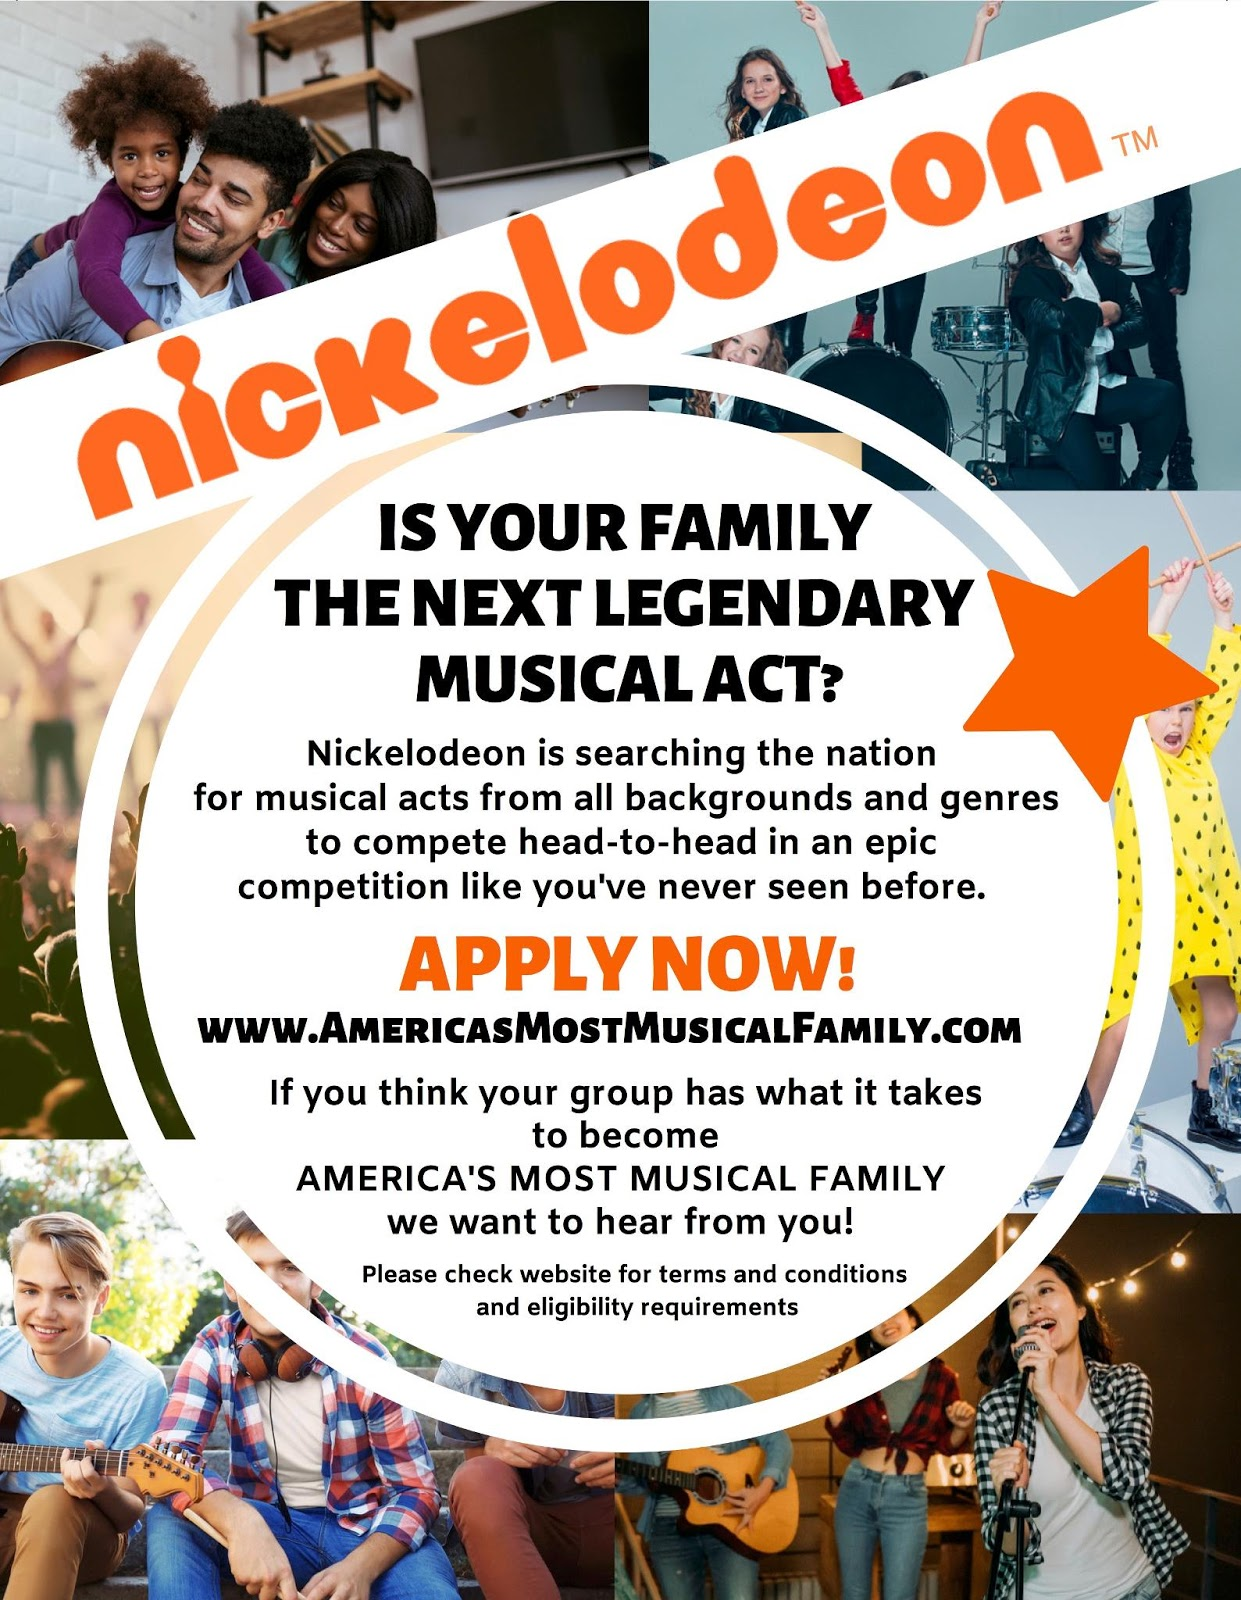 All That Reboot Nickelodeon Auditions : reboot, nickelodeon, auditions, NickALive!:, Nickelodeon, Looking, Musical, 'America's, Family', Casting, Auditions